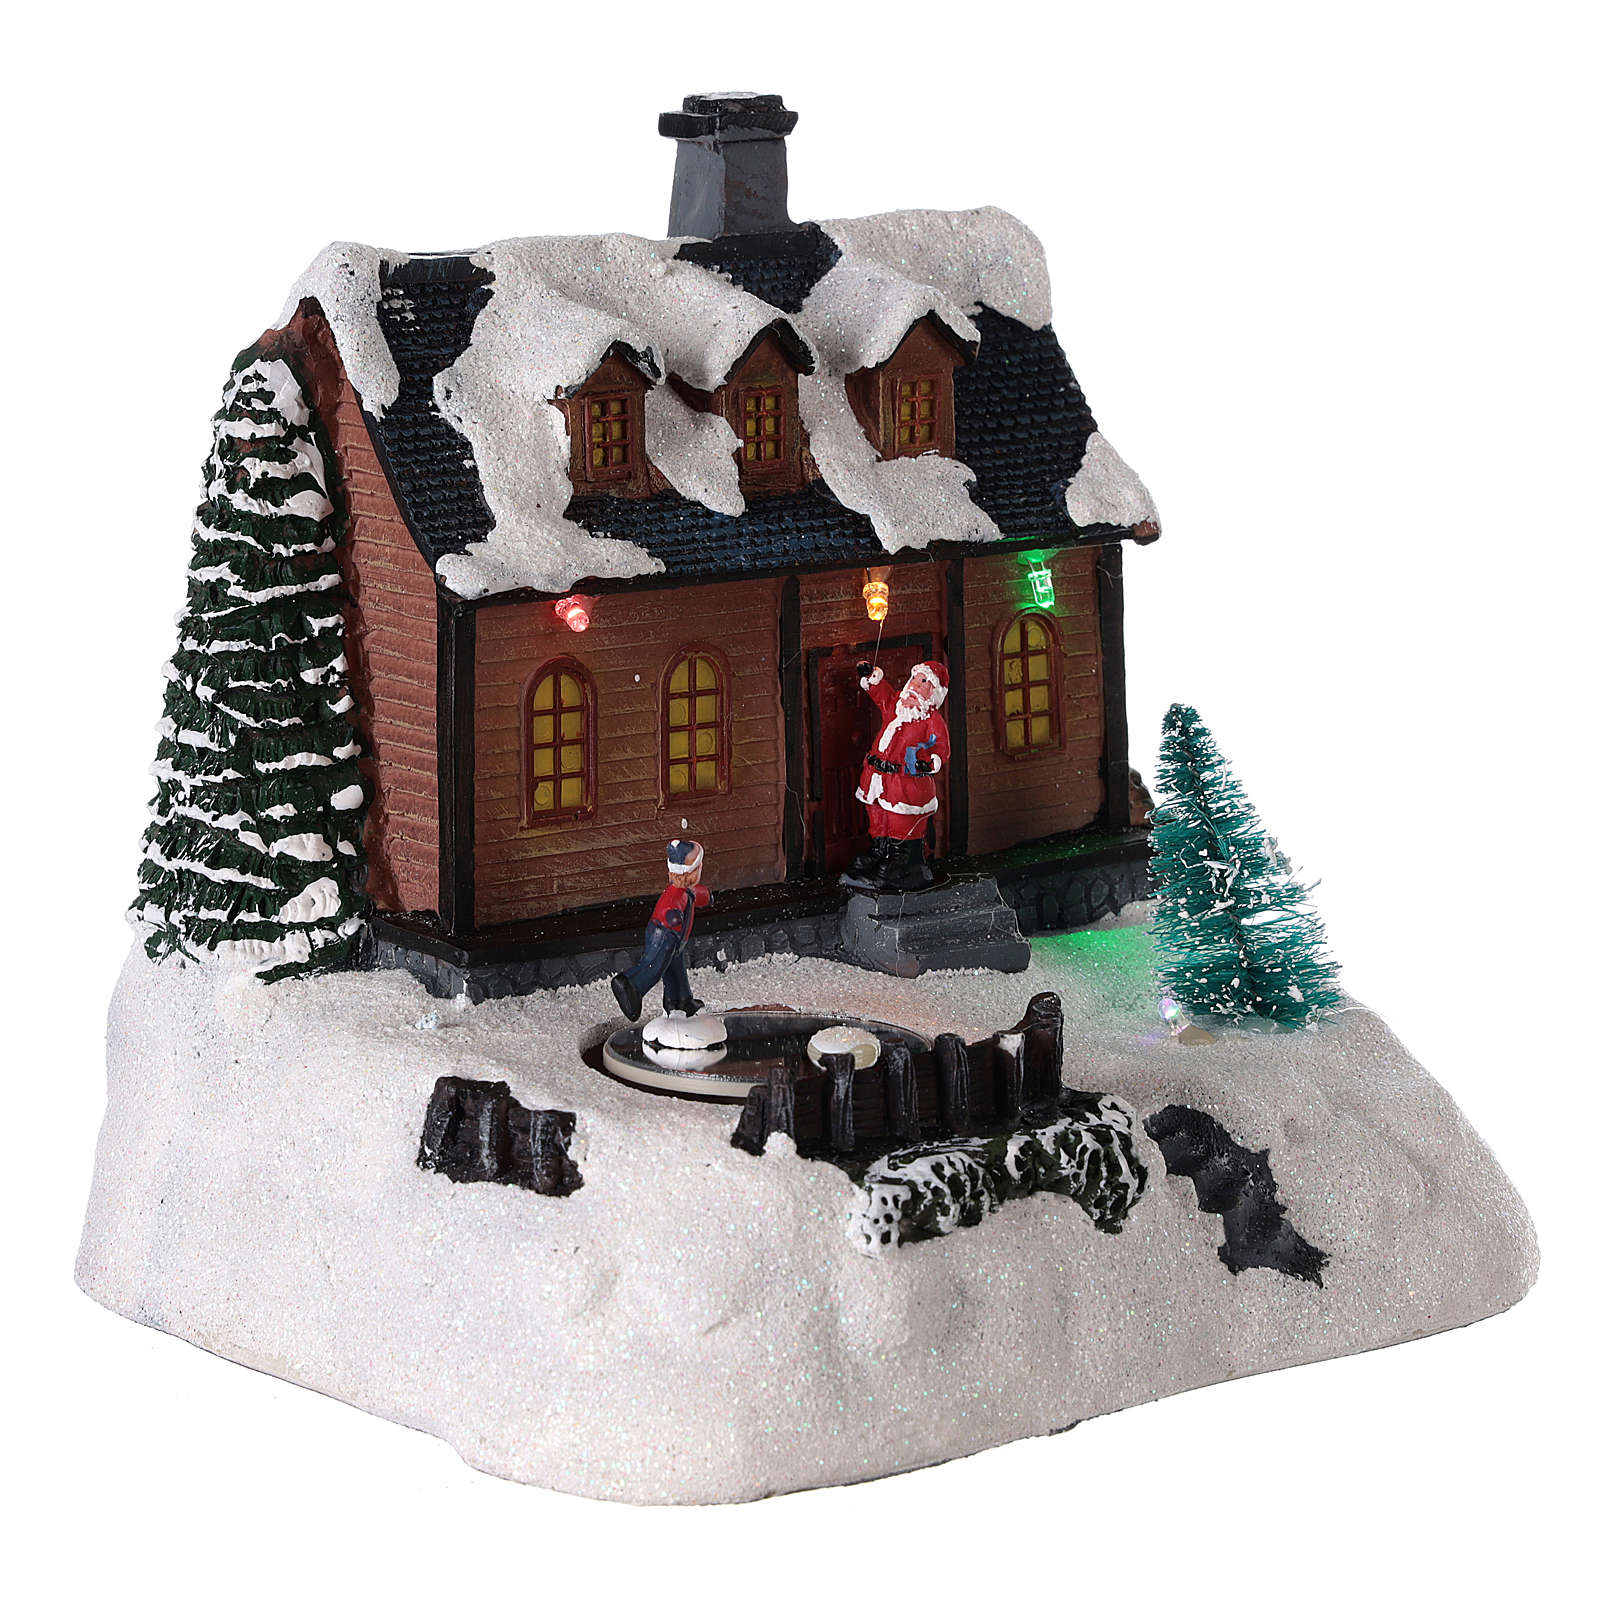 Maison Village Noel Christmas village house lighted with music 20x20x15 cm | online